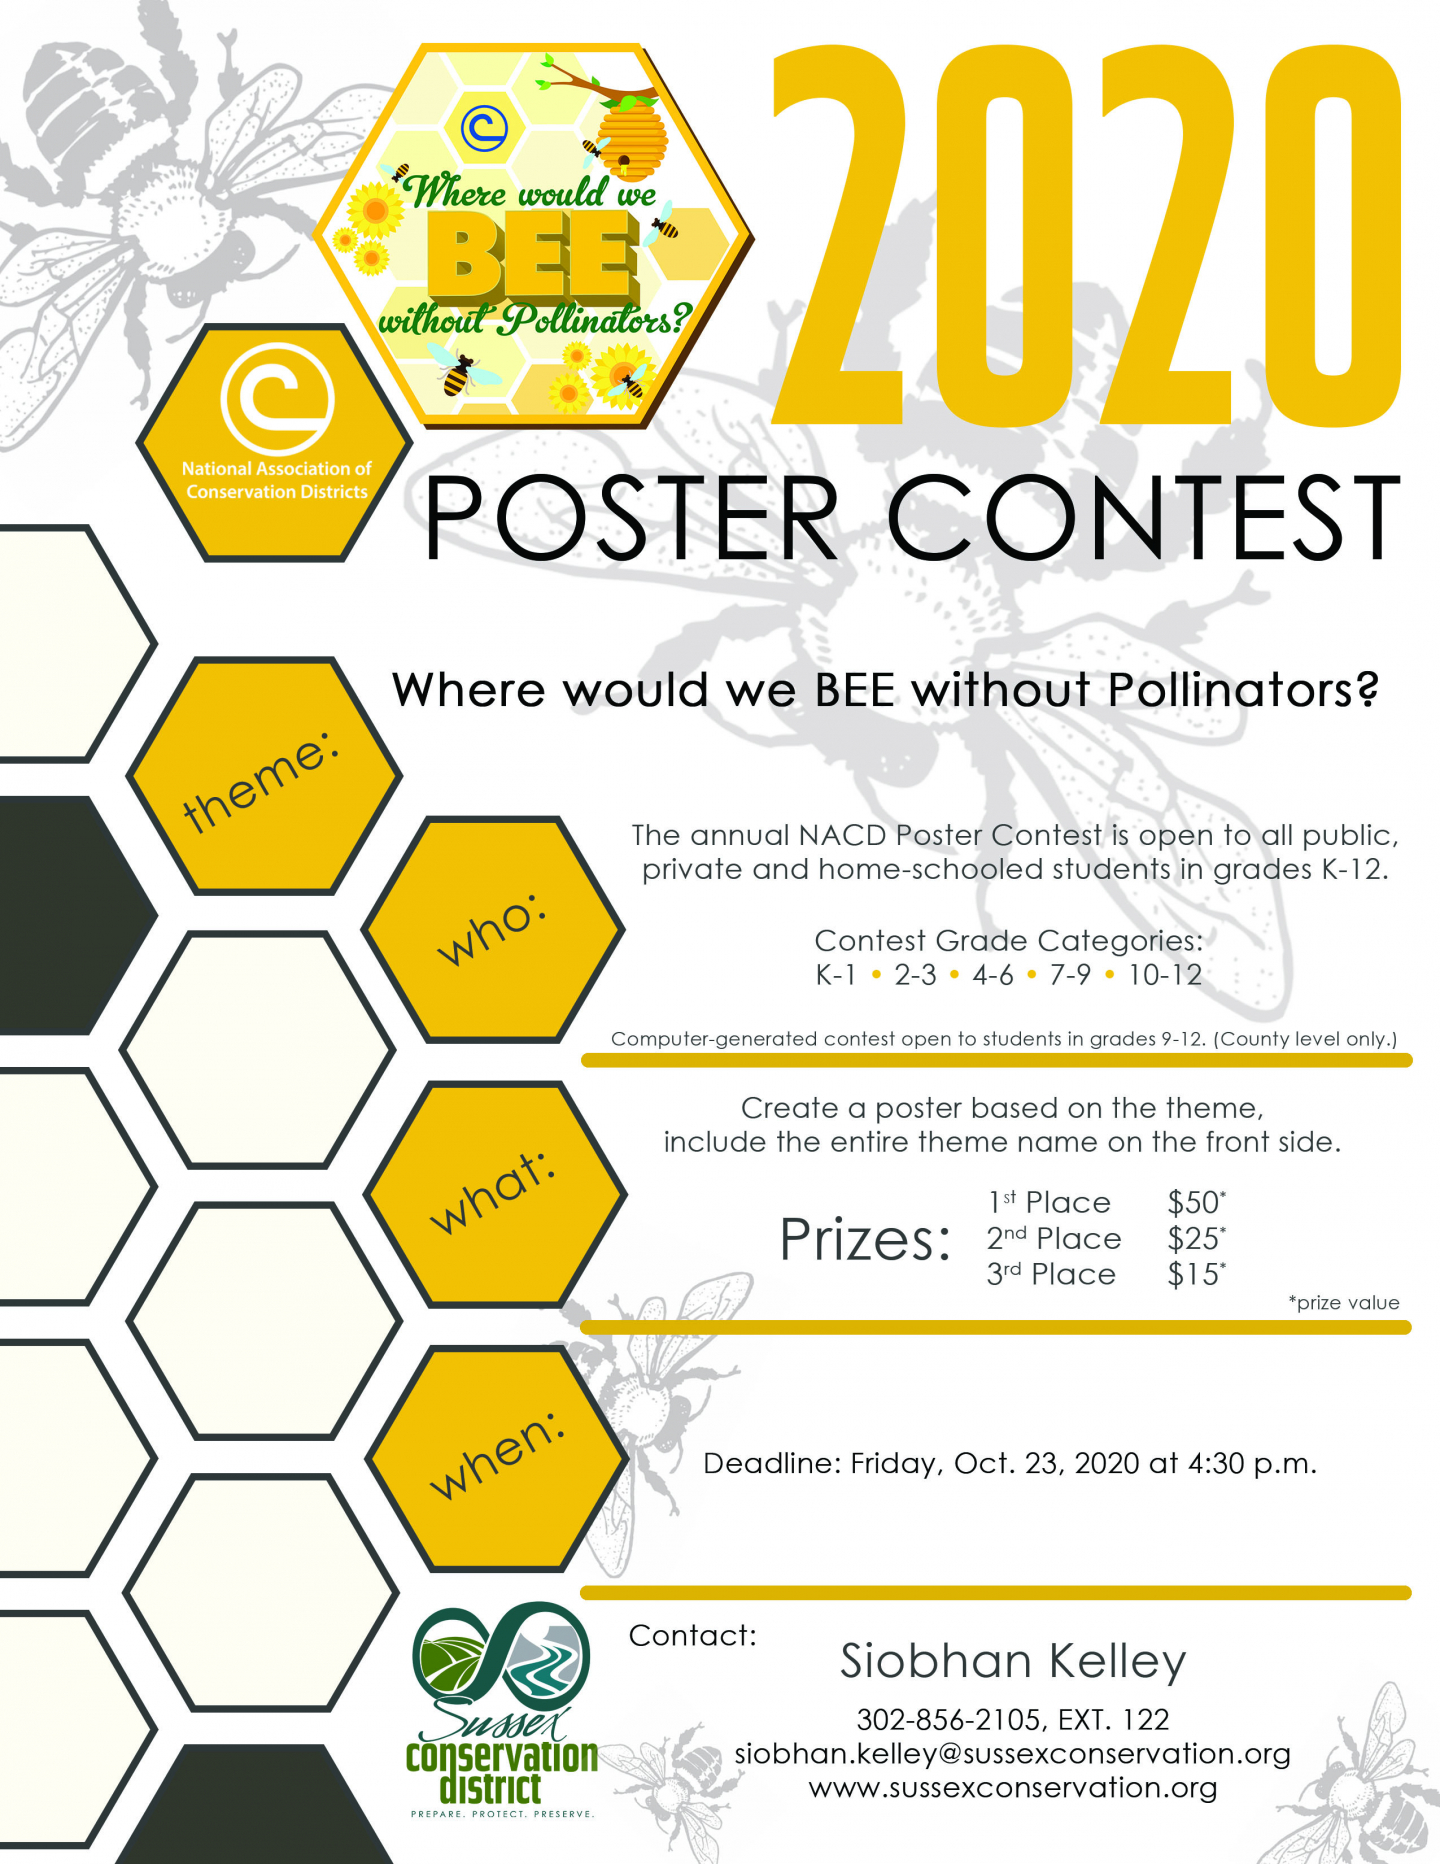 Poster Contest Flyer PG 1 SCD